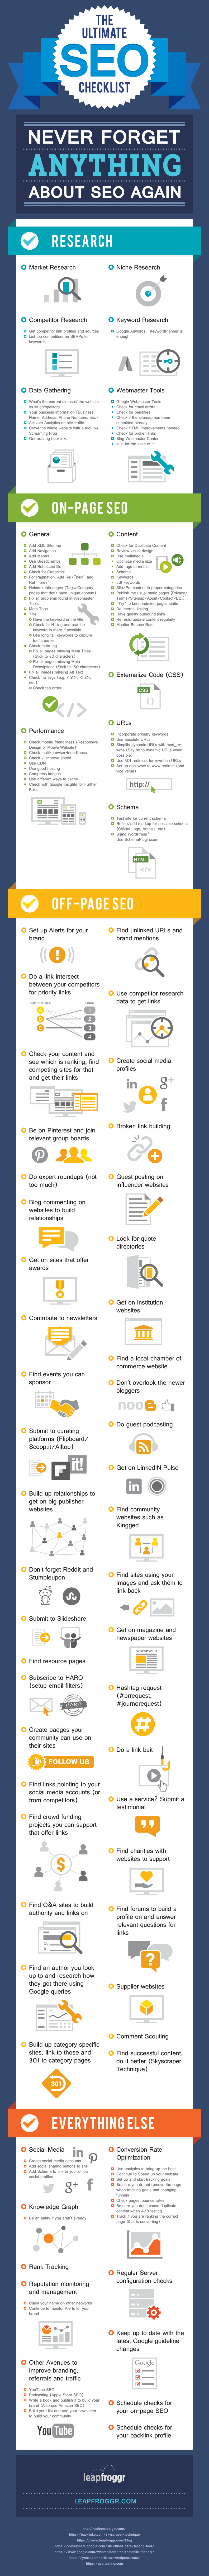 Infographic outlines a range of SEO processes and tips